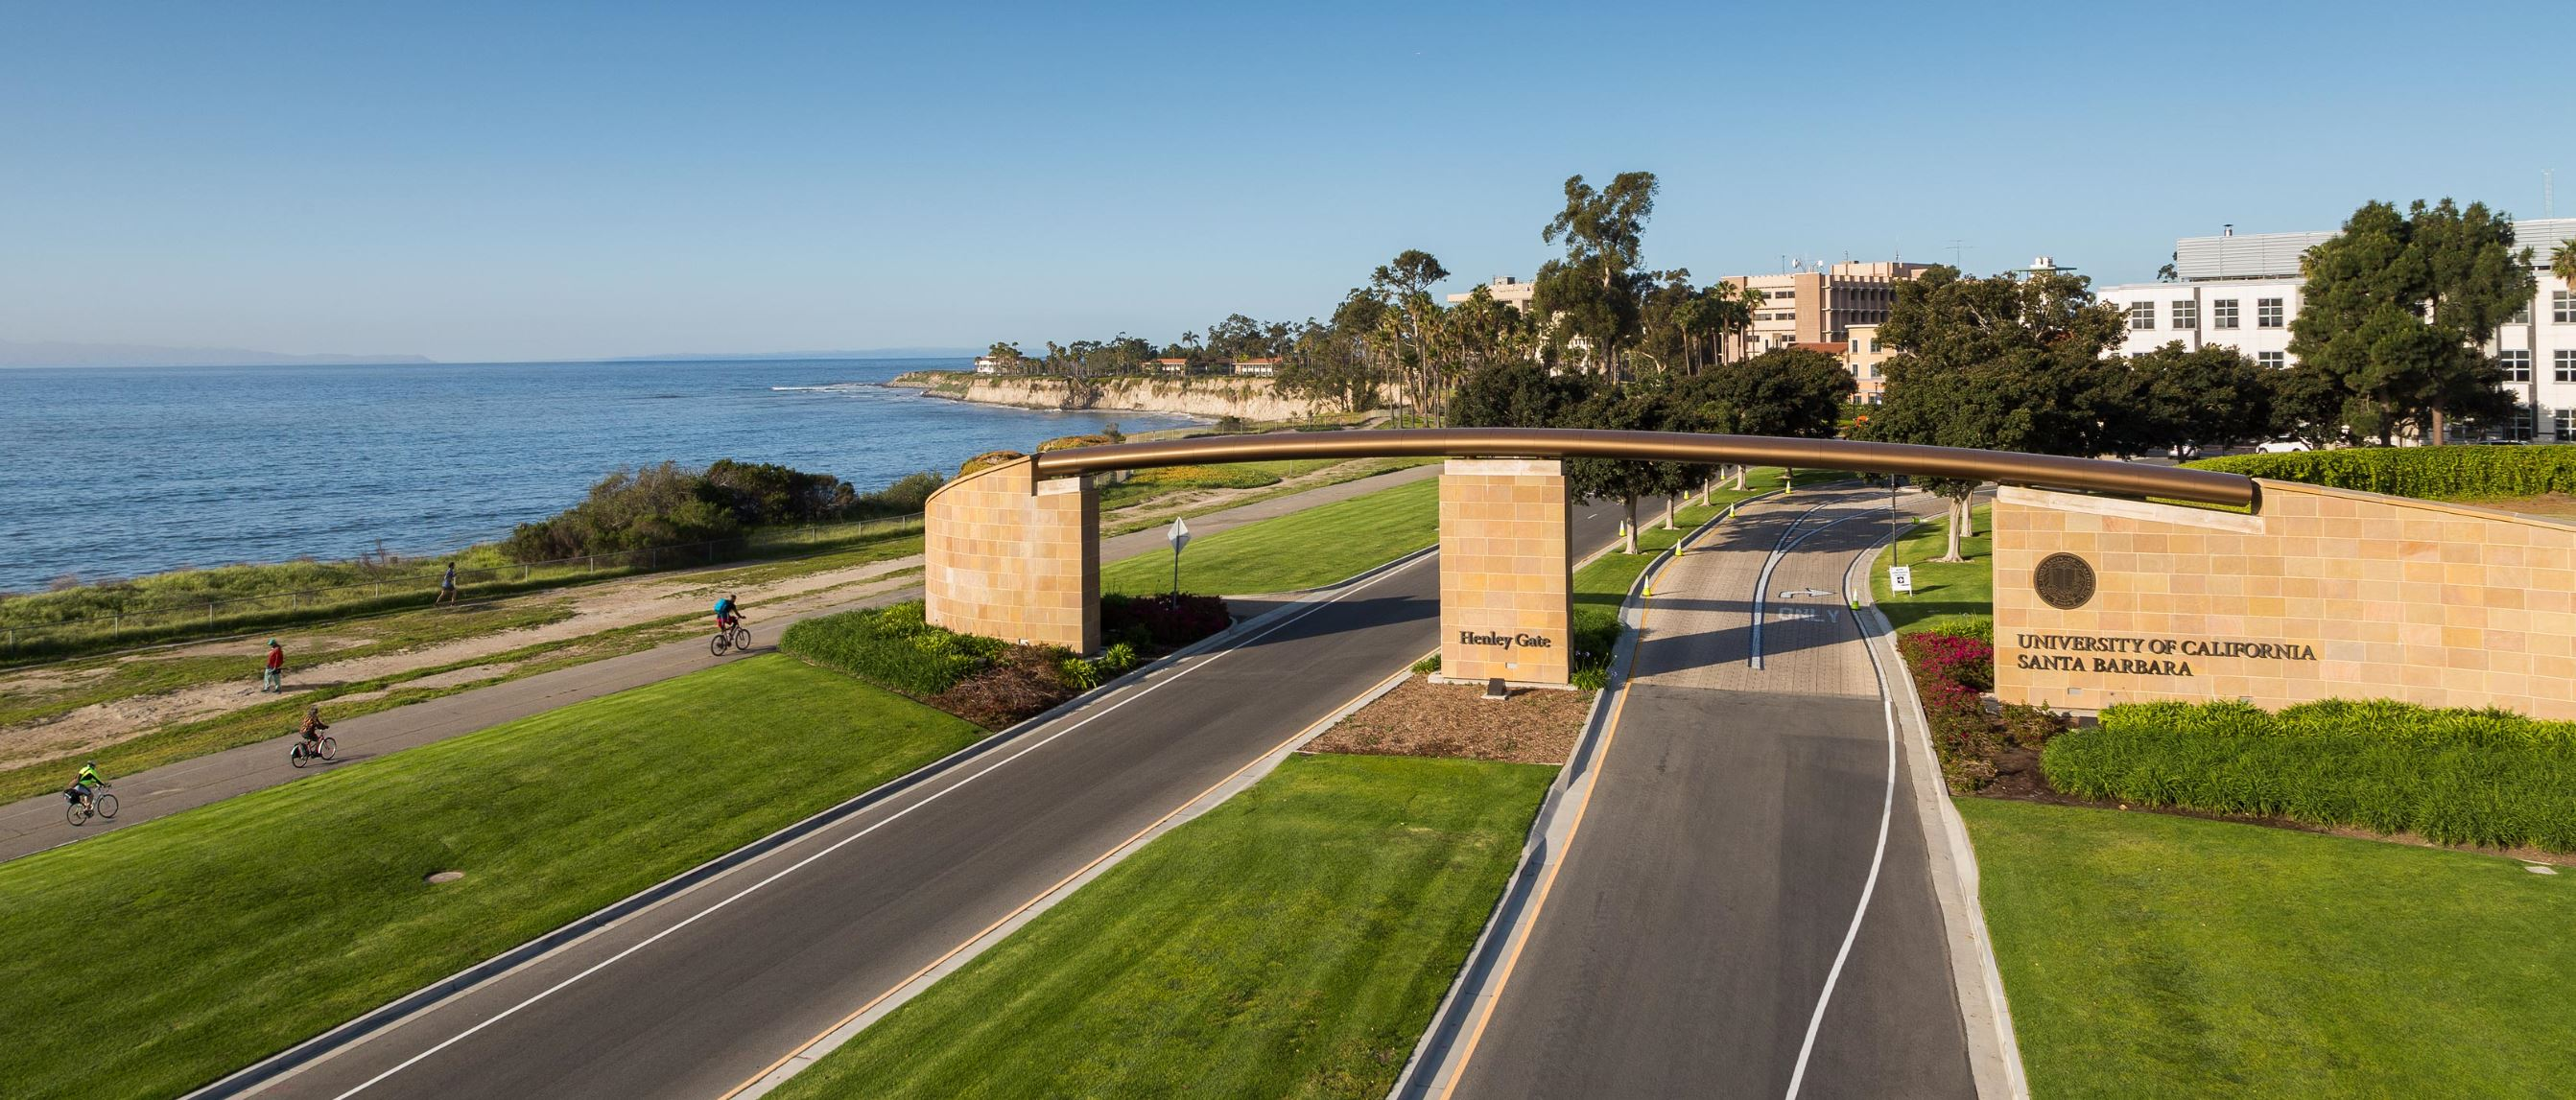 SLAB is moving to UCSB